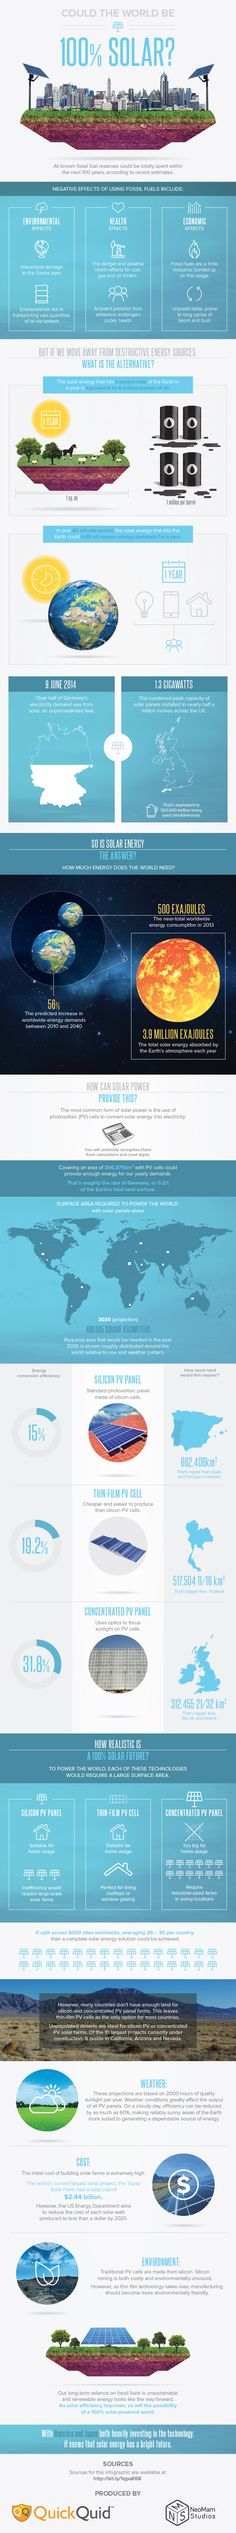 Could The World Be 100% Solar? [Infographic, Alternative Energy, Solar Energy, Solar PV] #NerdMentor